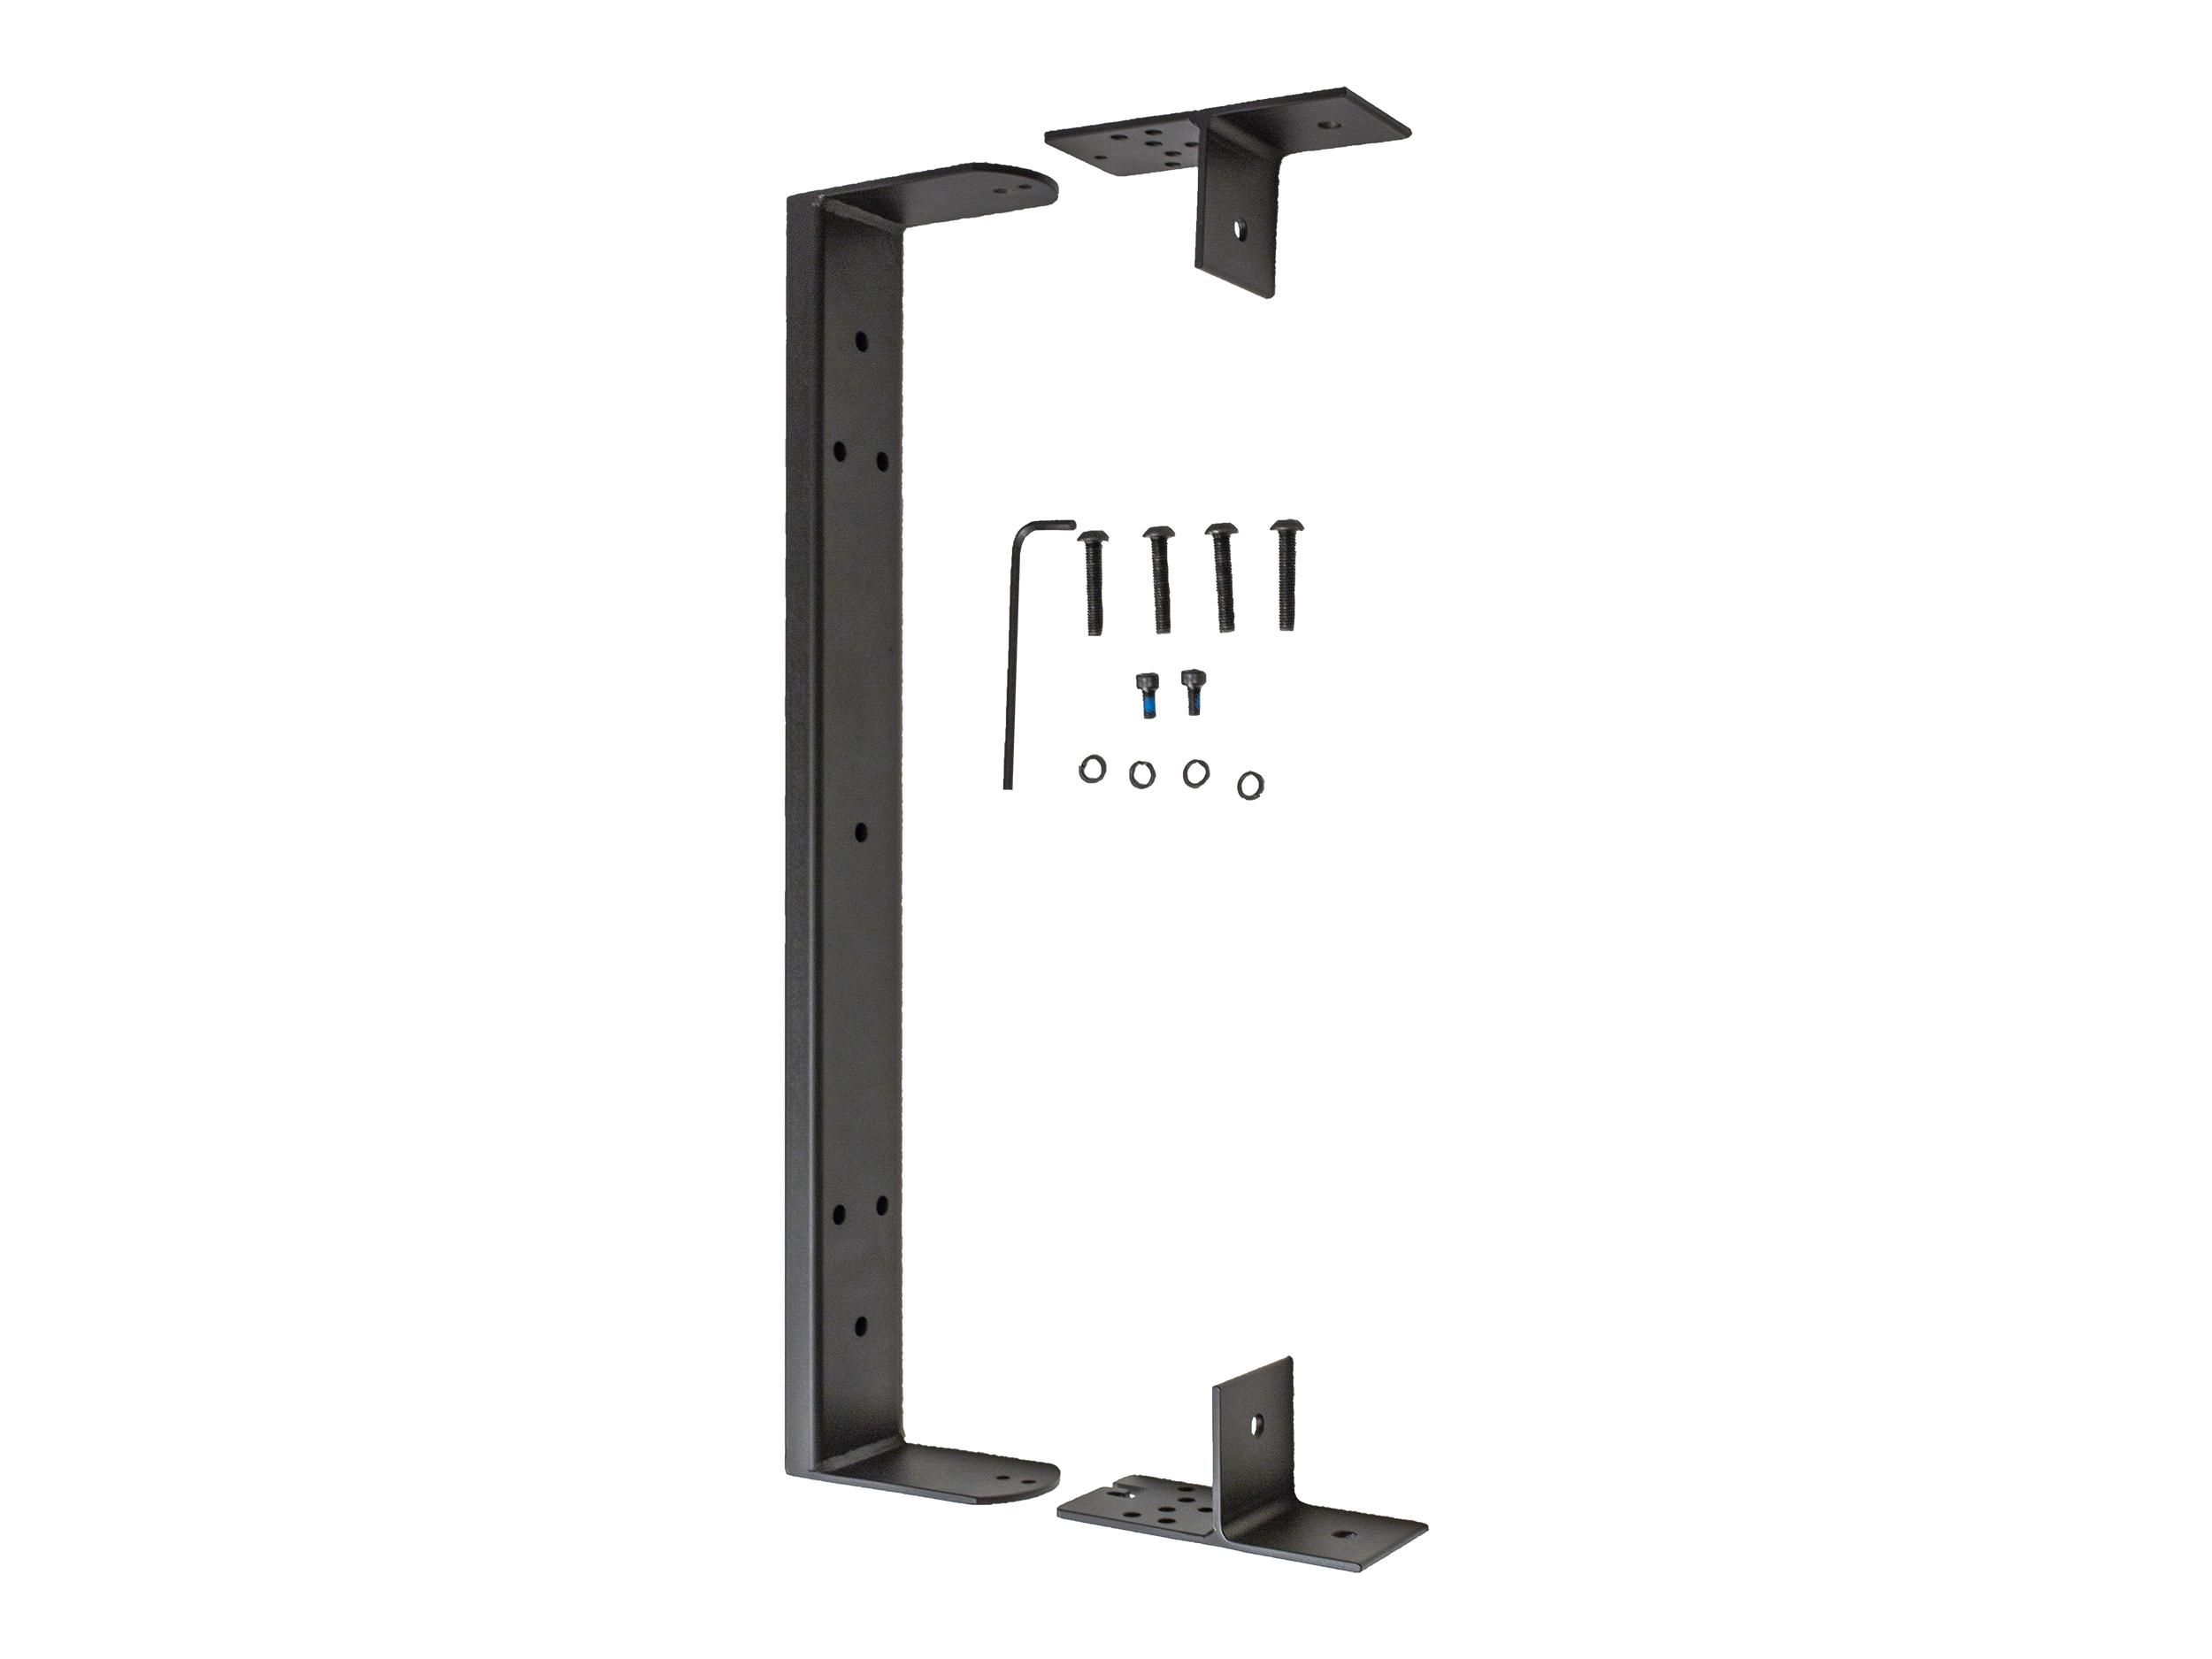 ETXBRKT10 Wall Mount Bracket for ETX-10P by Electro-Voice